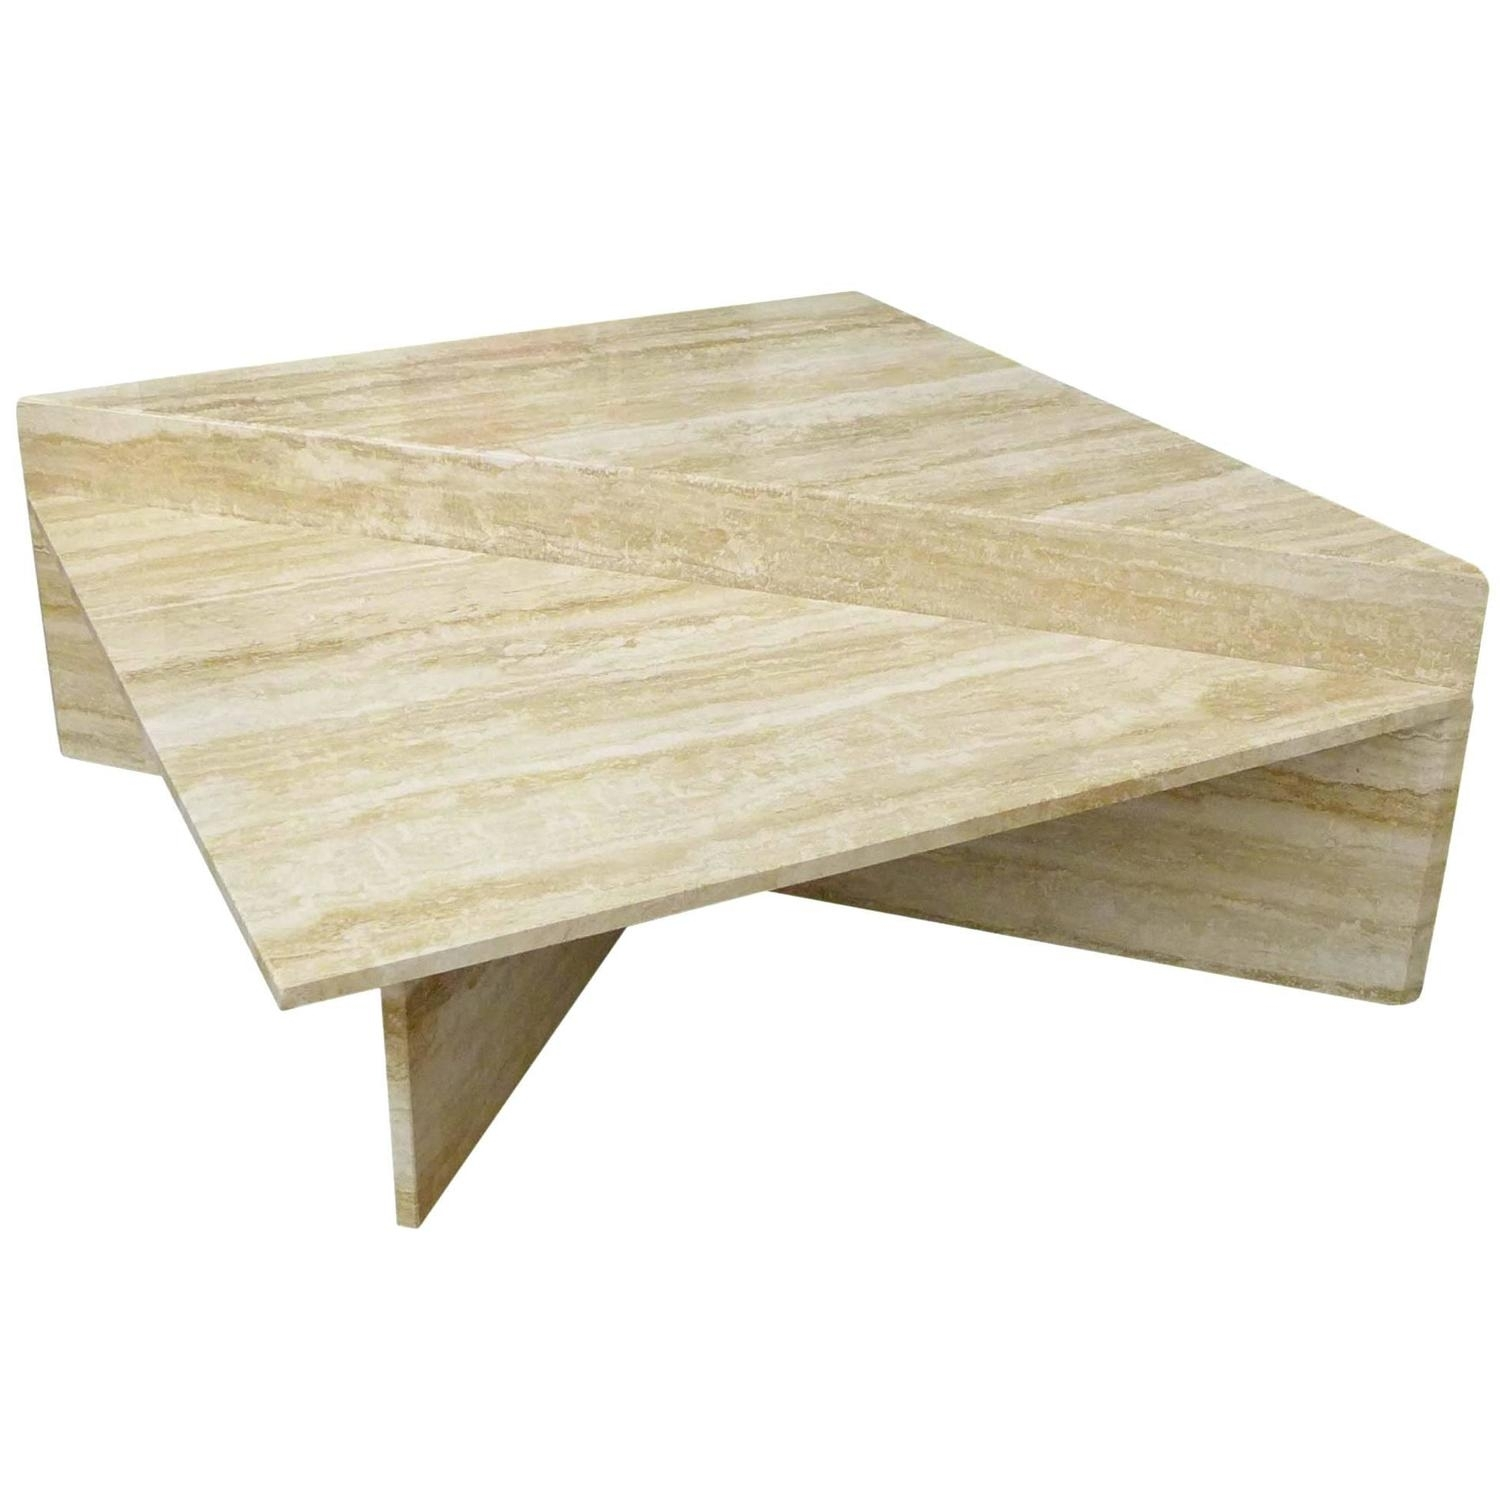 Two-Piece Modular Travertine Coffee Table At 1Stdibs with regard to Modular Coffee Tables (Image 29 of 30)